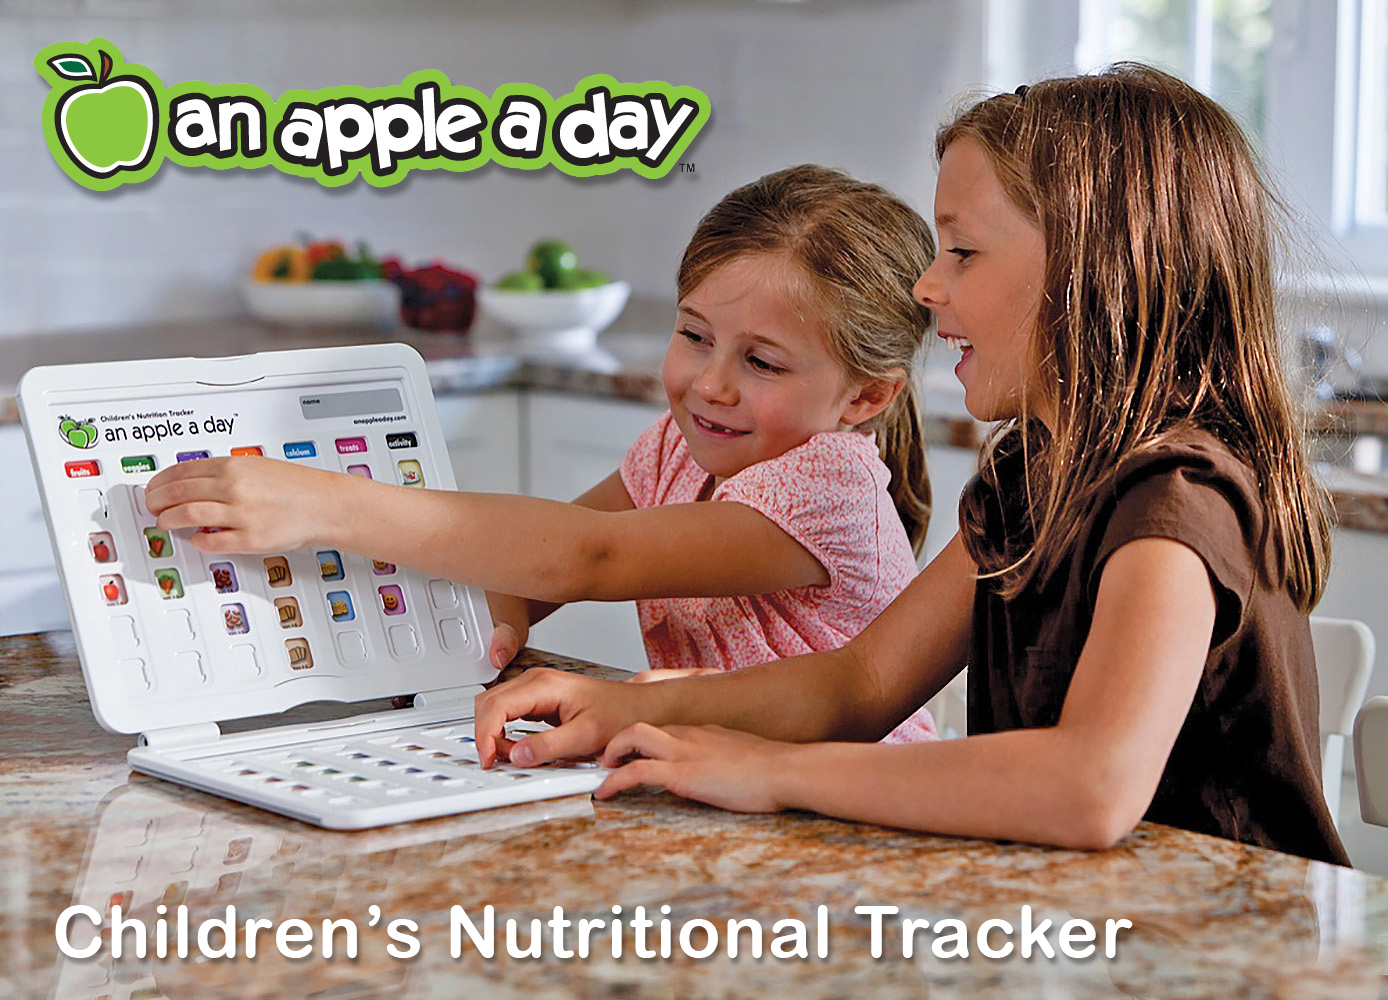 An Apple A Day Children's Nutritional Tracker